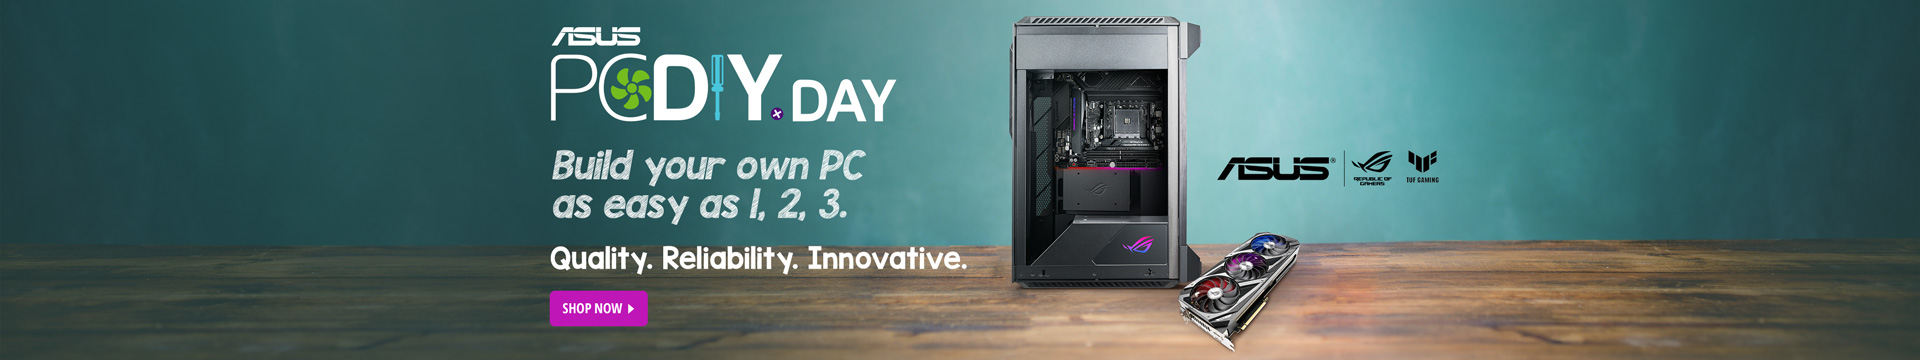 ASUS PC DIY DAY